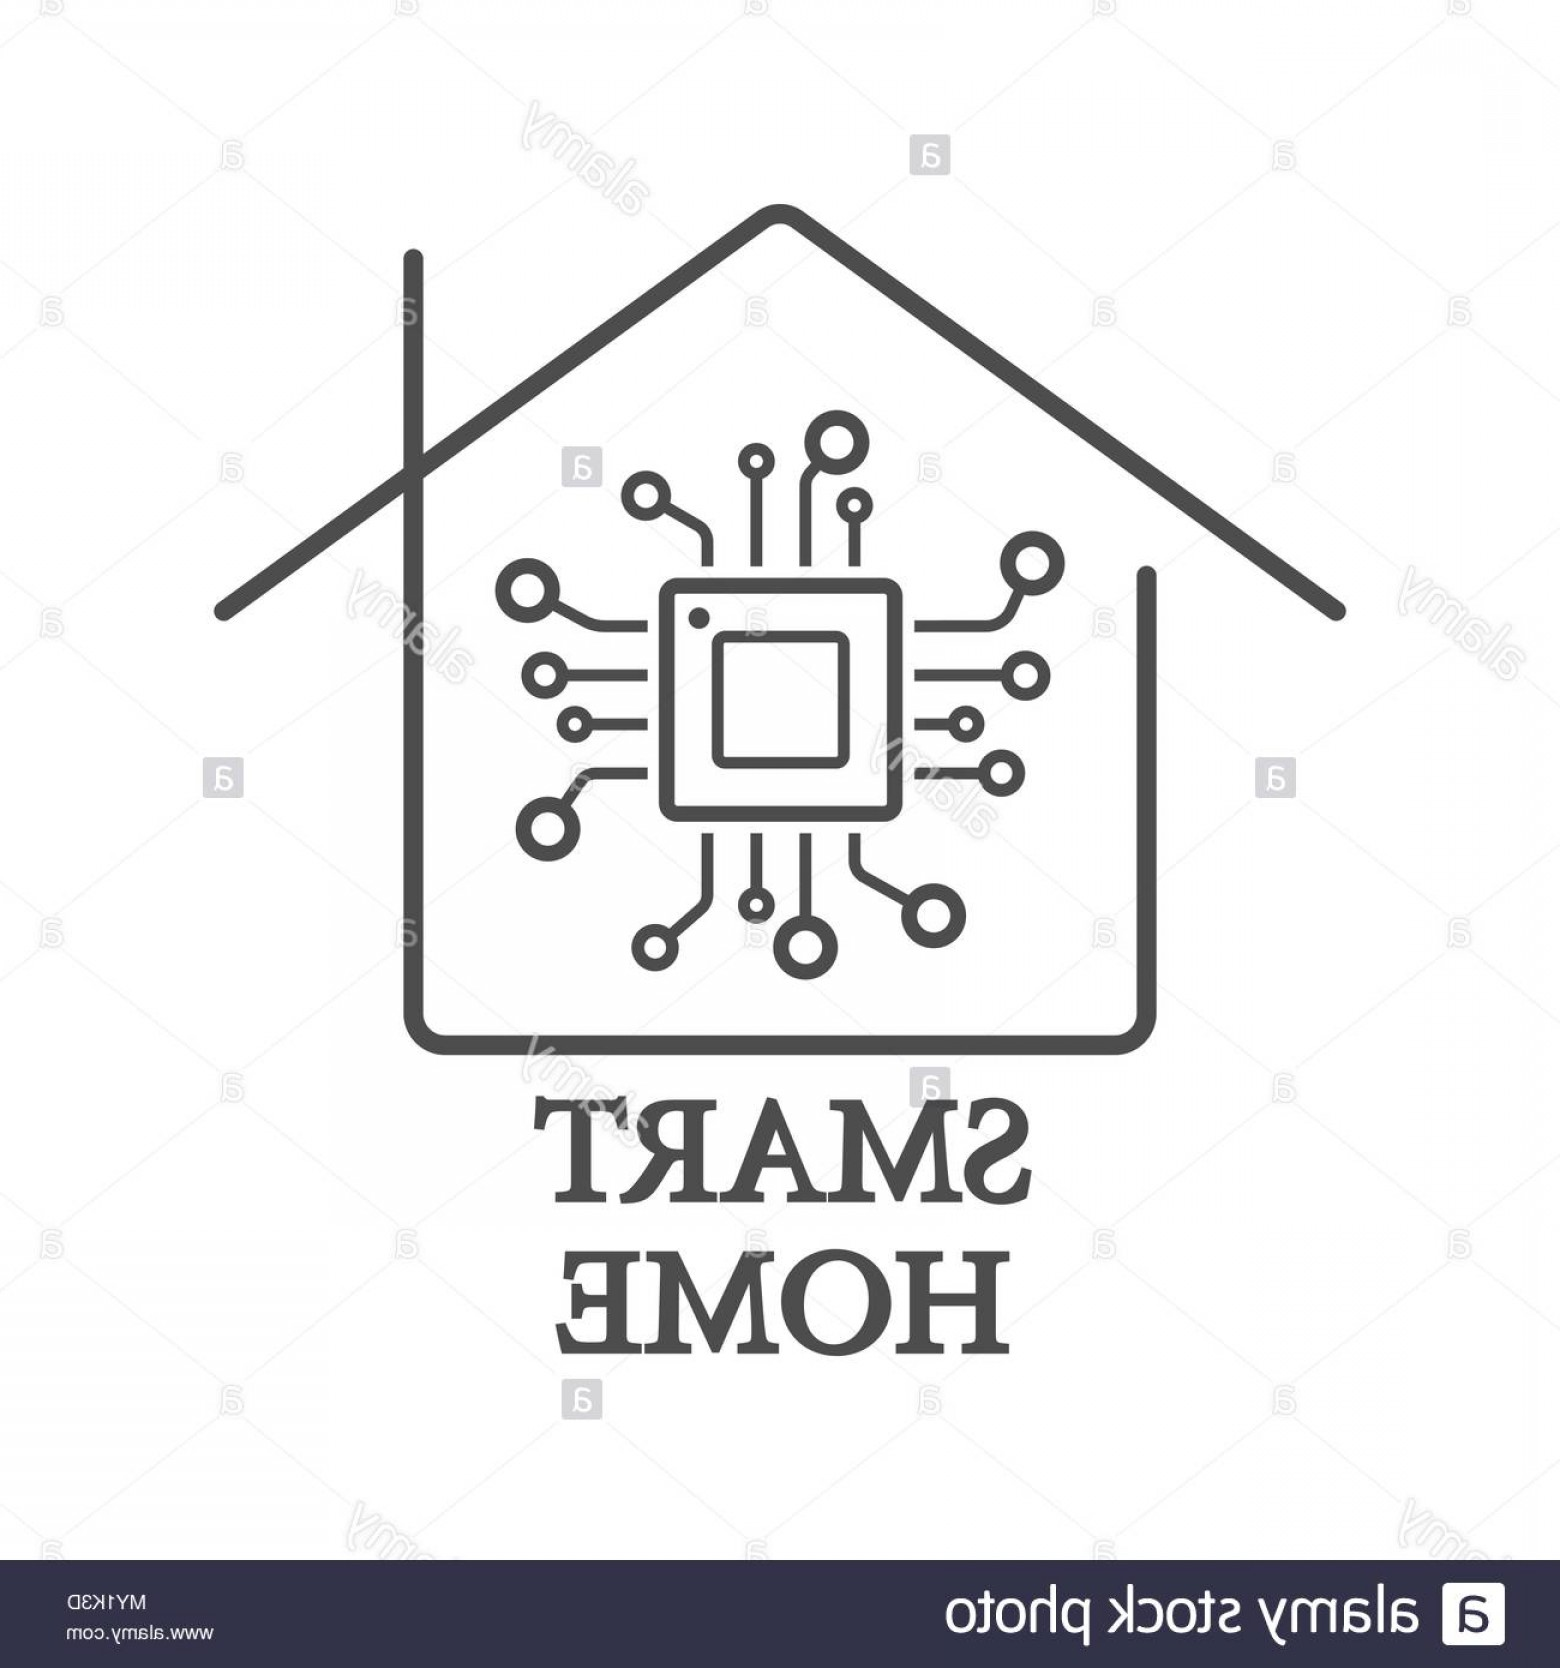 Home Logo Vector: Processor Styled Smart Home Logo Vector With Chip Image